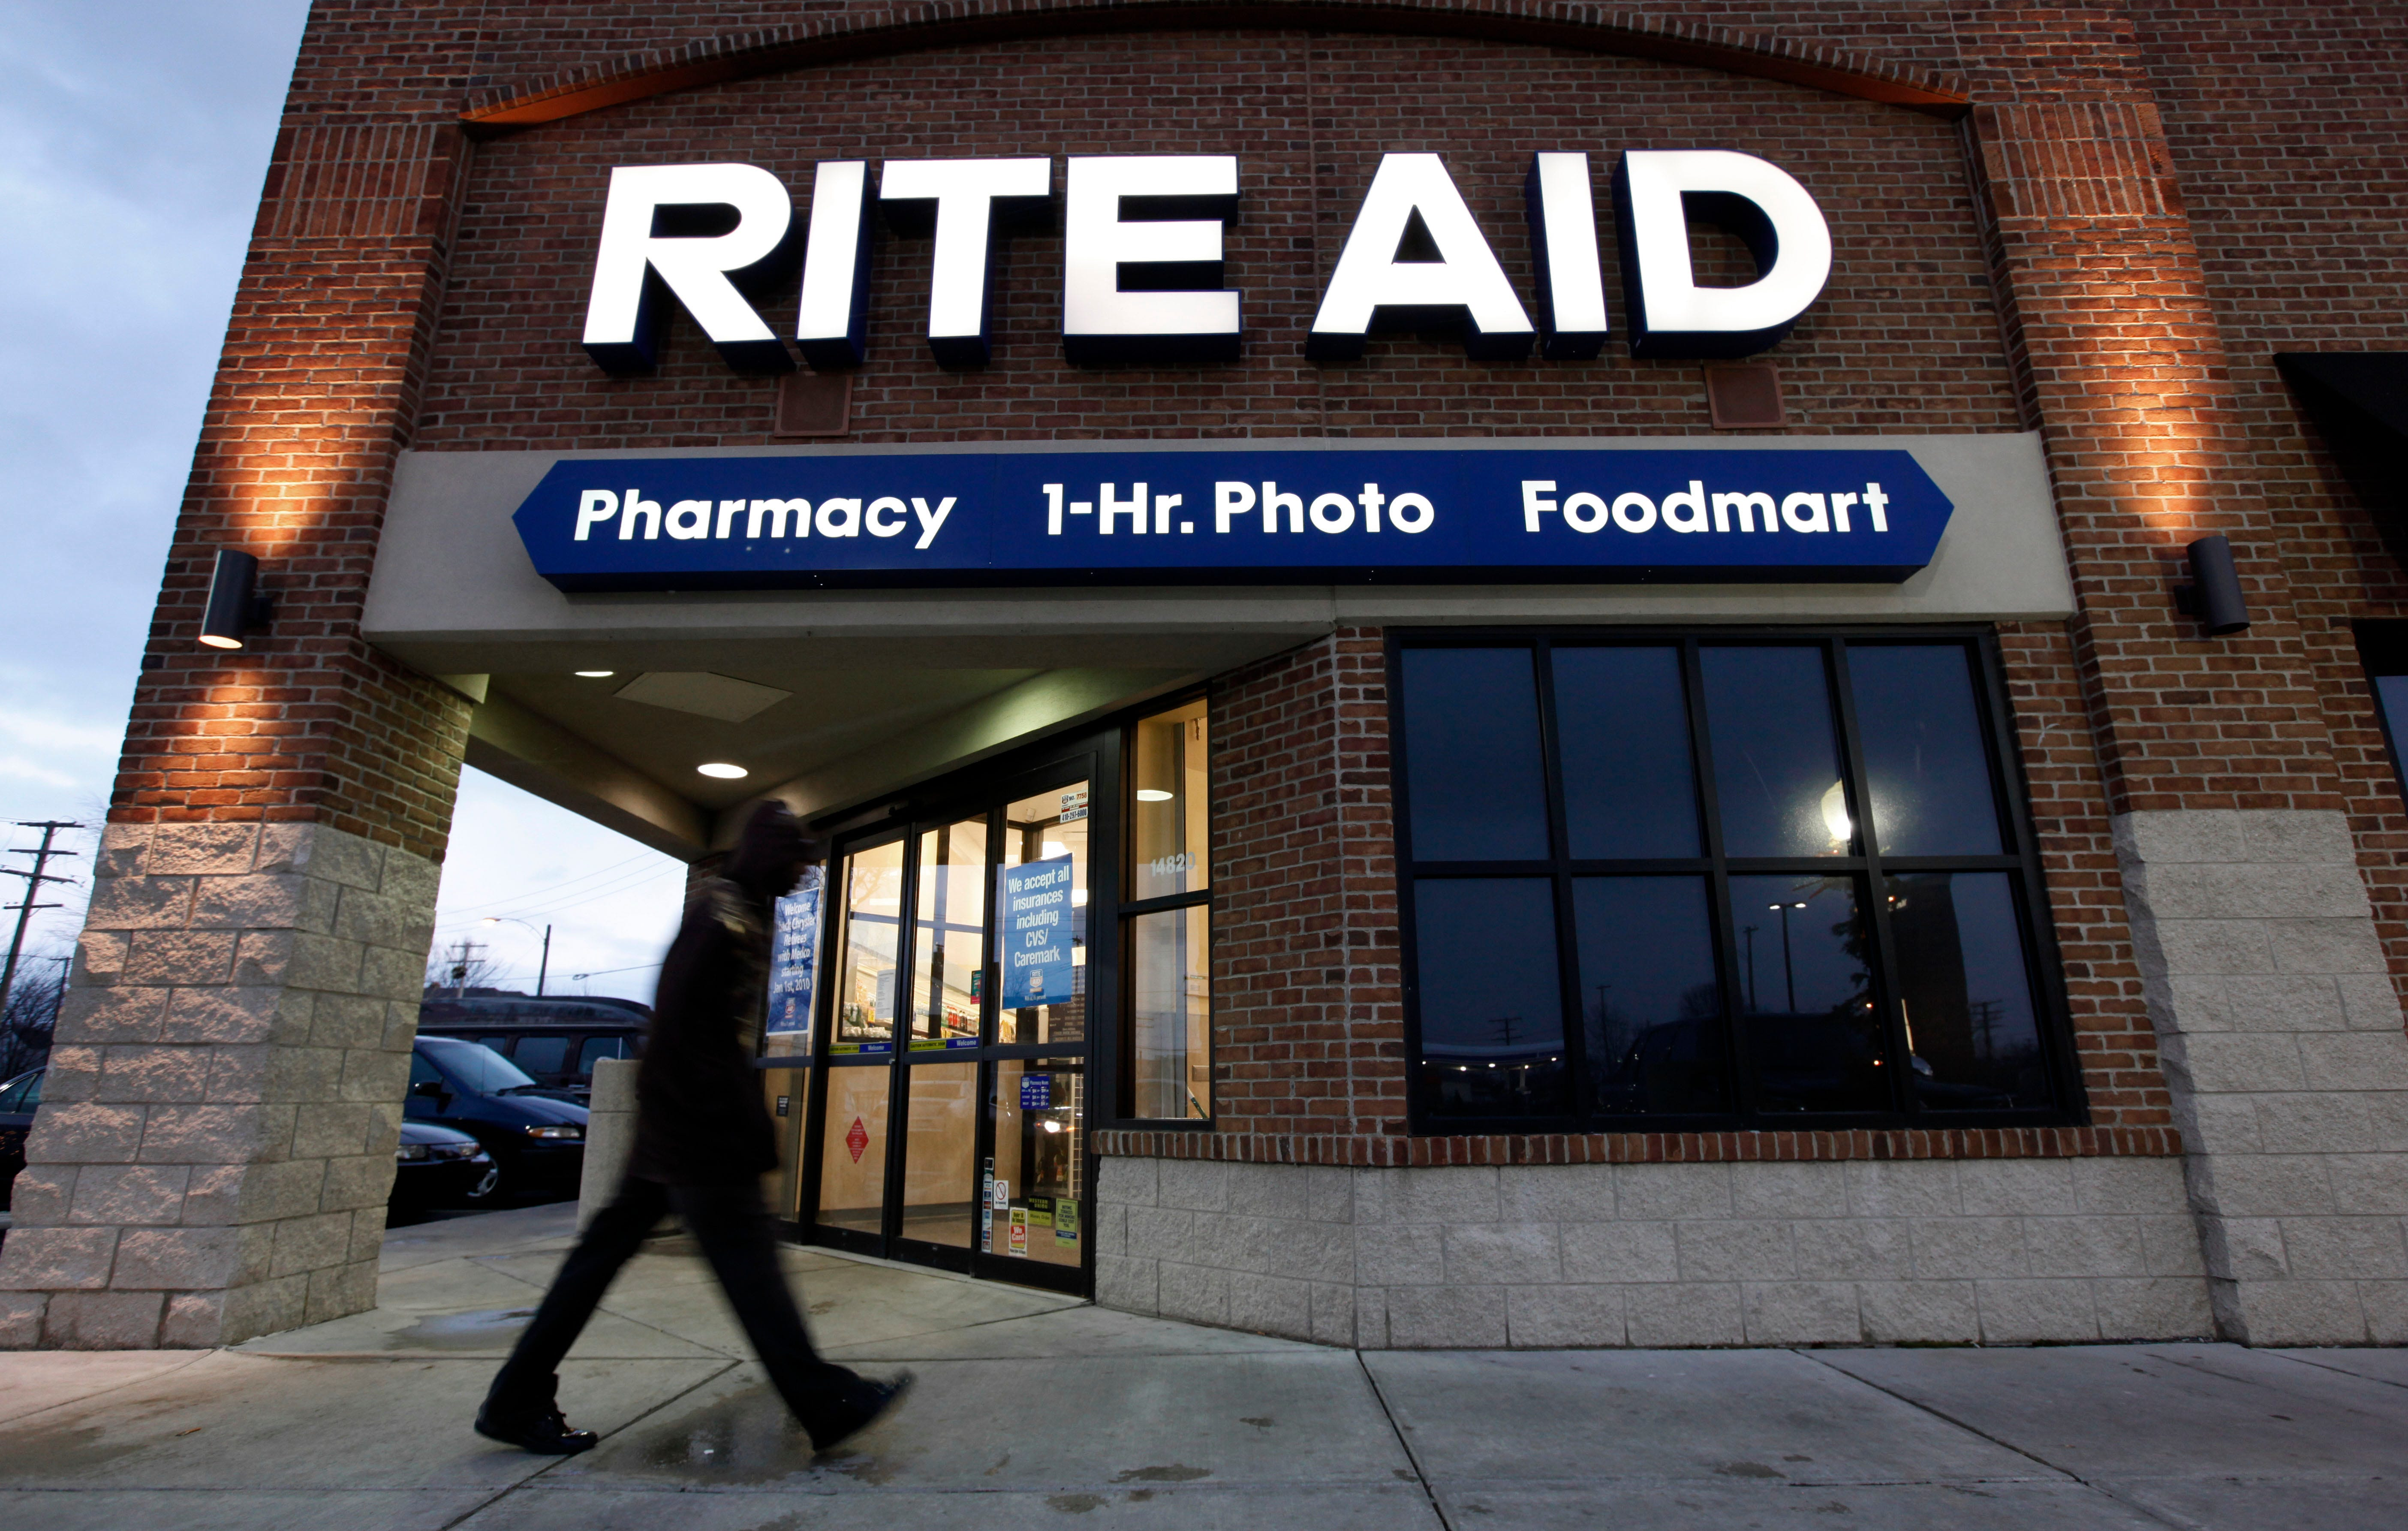 Rite Aid shares rise on earnings beat